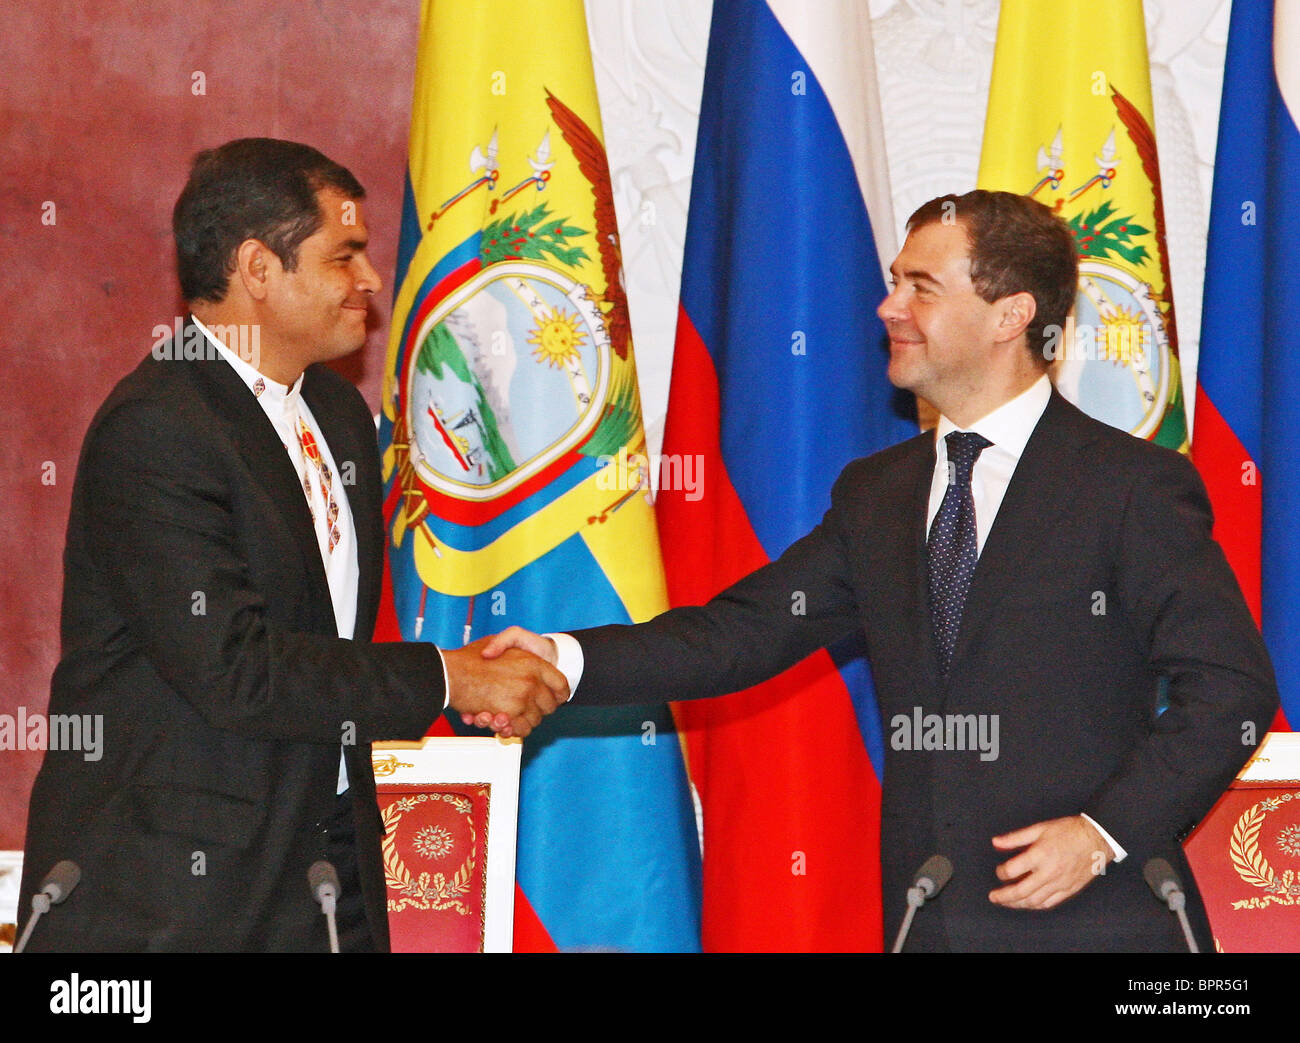 Presidents of Russia and Ecuador meet for talks - Stock Image